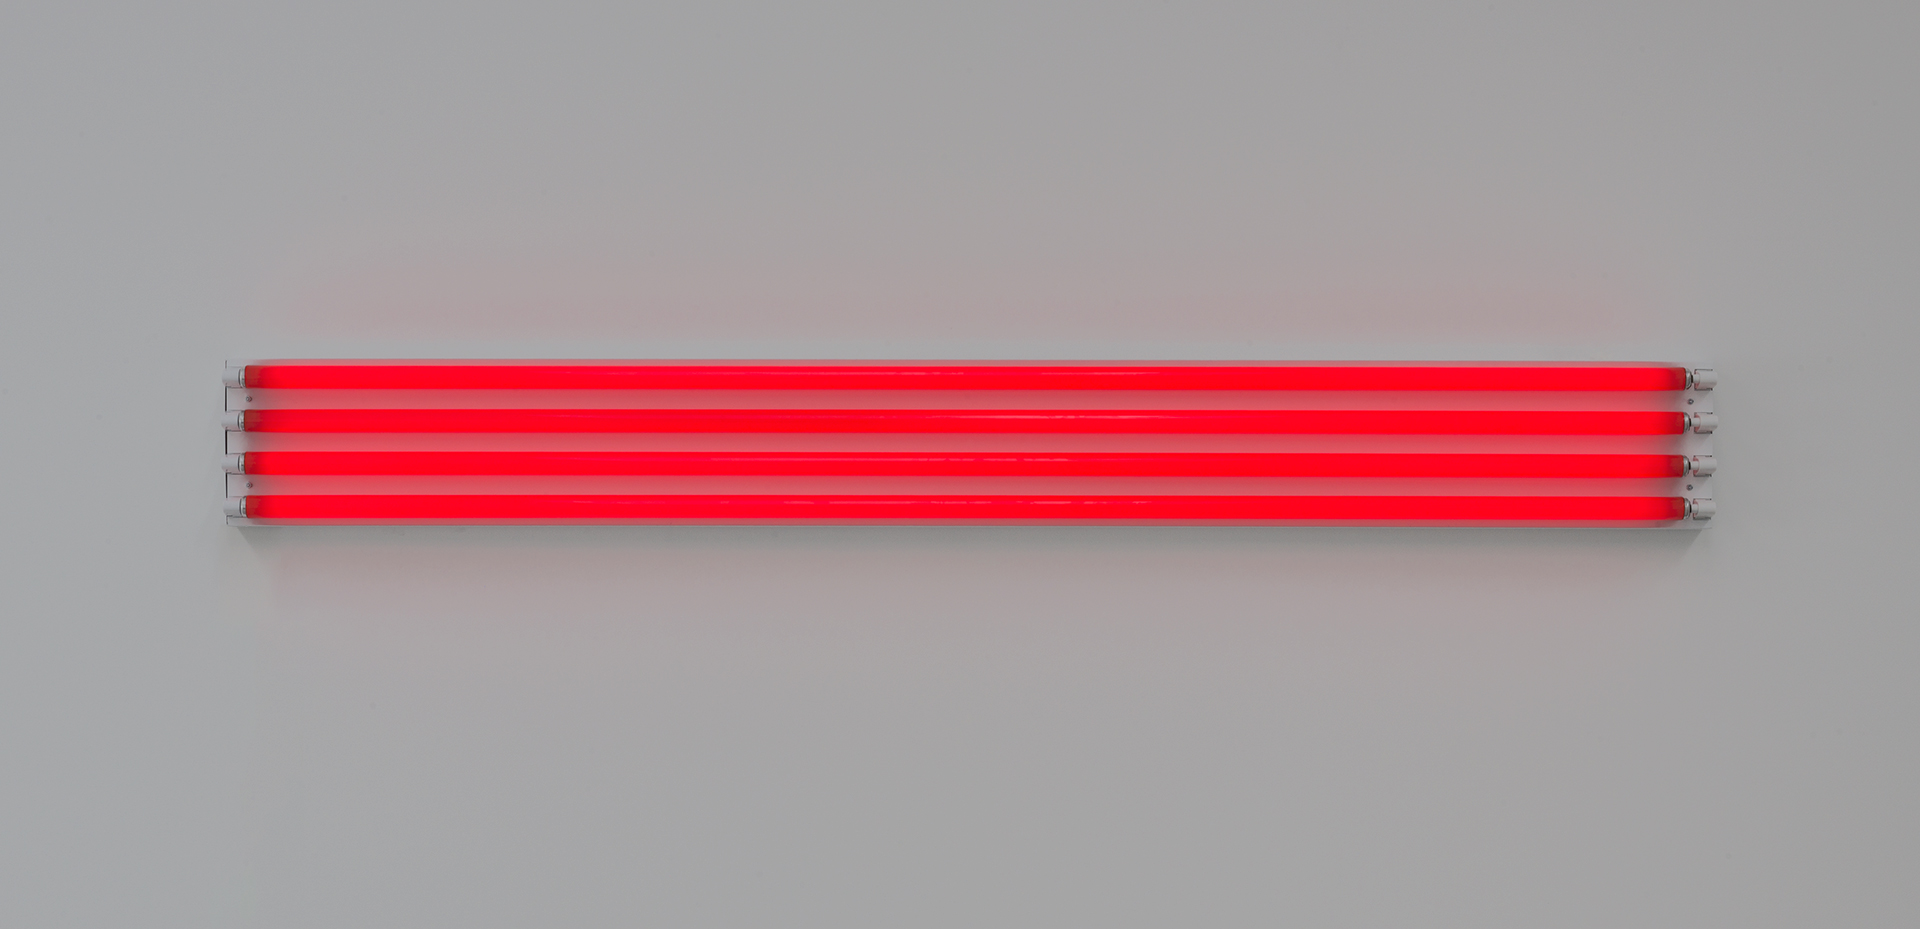 A sculpture by Dan Flavin, titled four red horizontals (to Sonja), dated 1963.